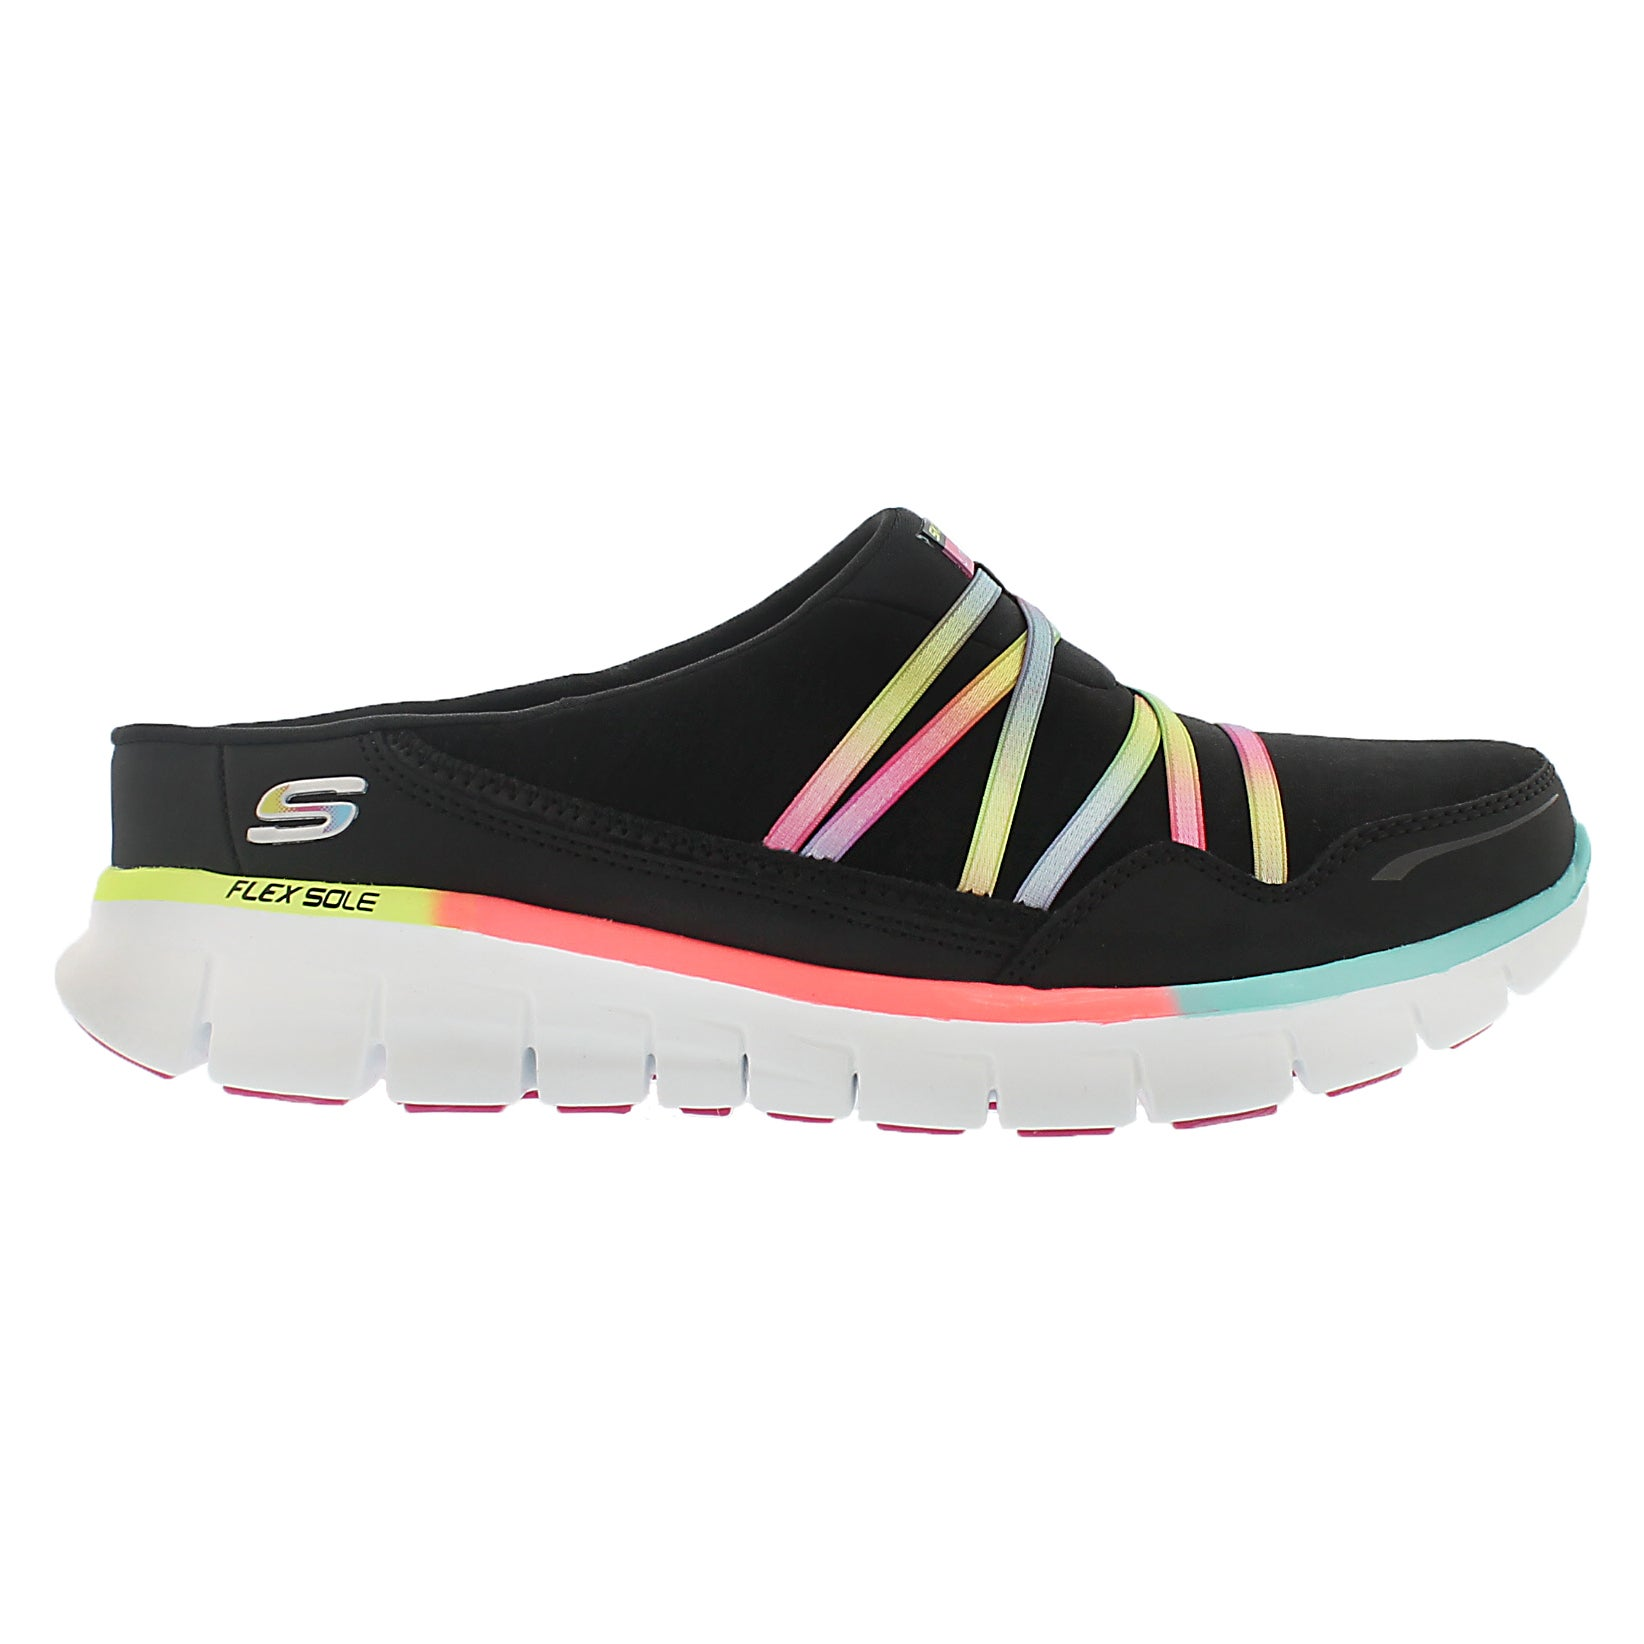 Lds Synergy blk multi open back sneaker